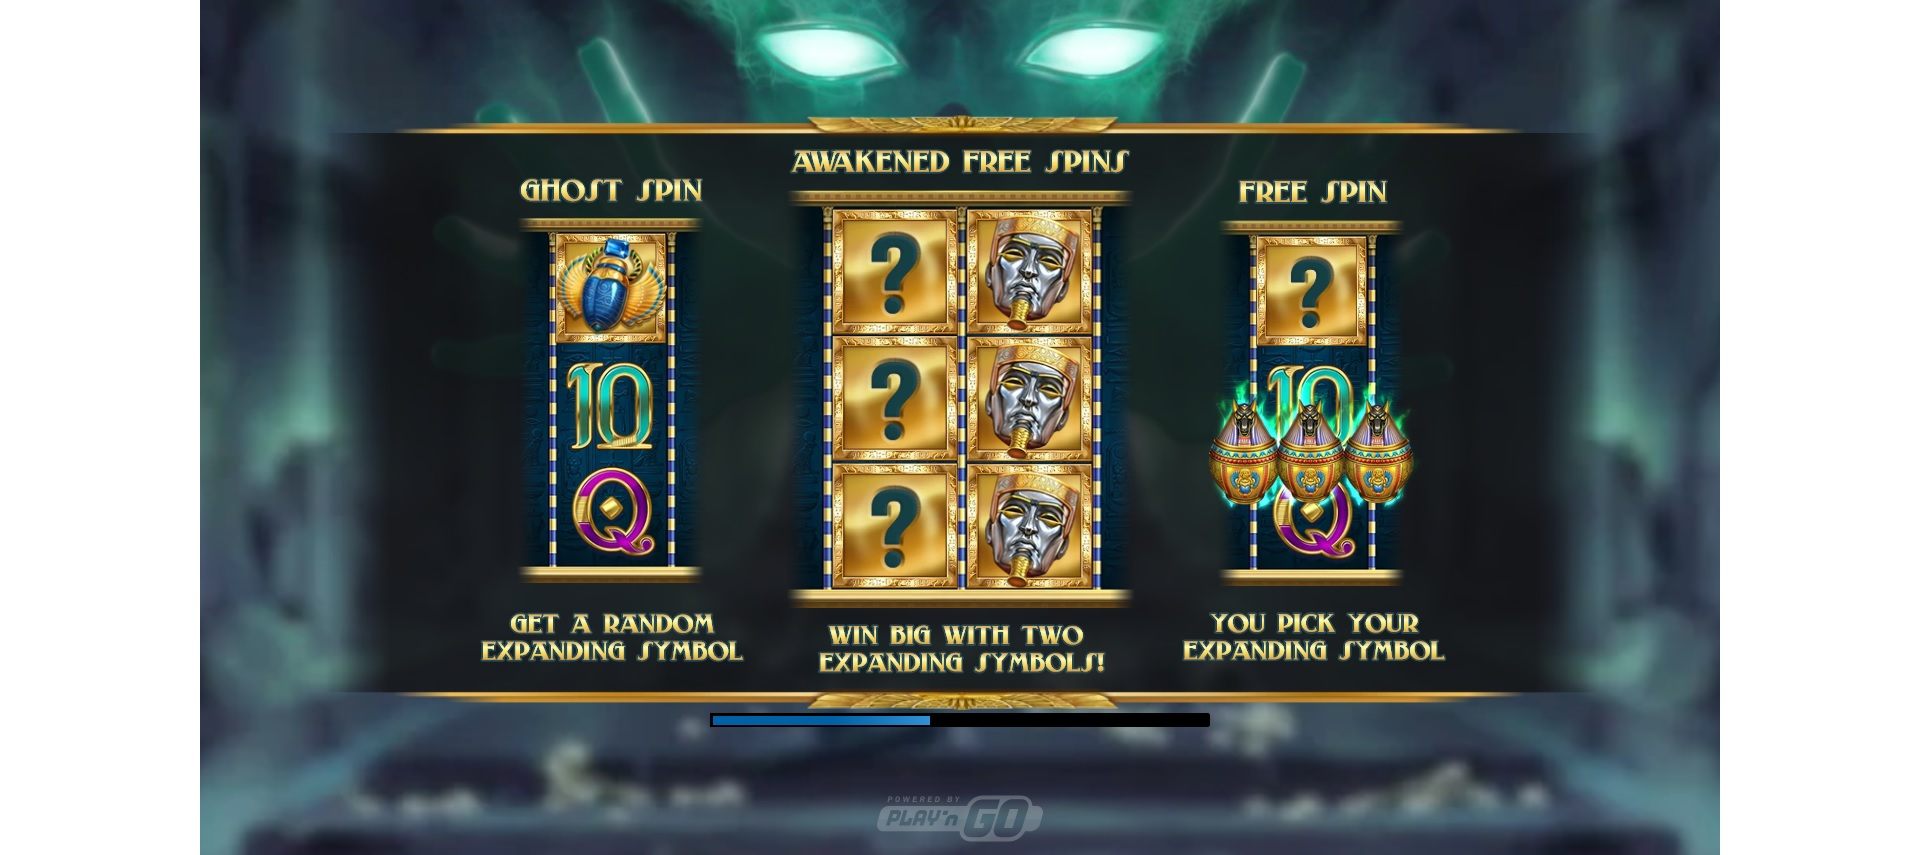 How to win big in Ghost of Dead – Awakened Free Spins feature